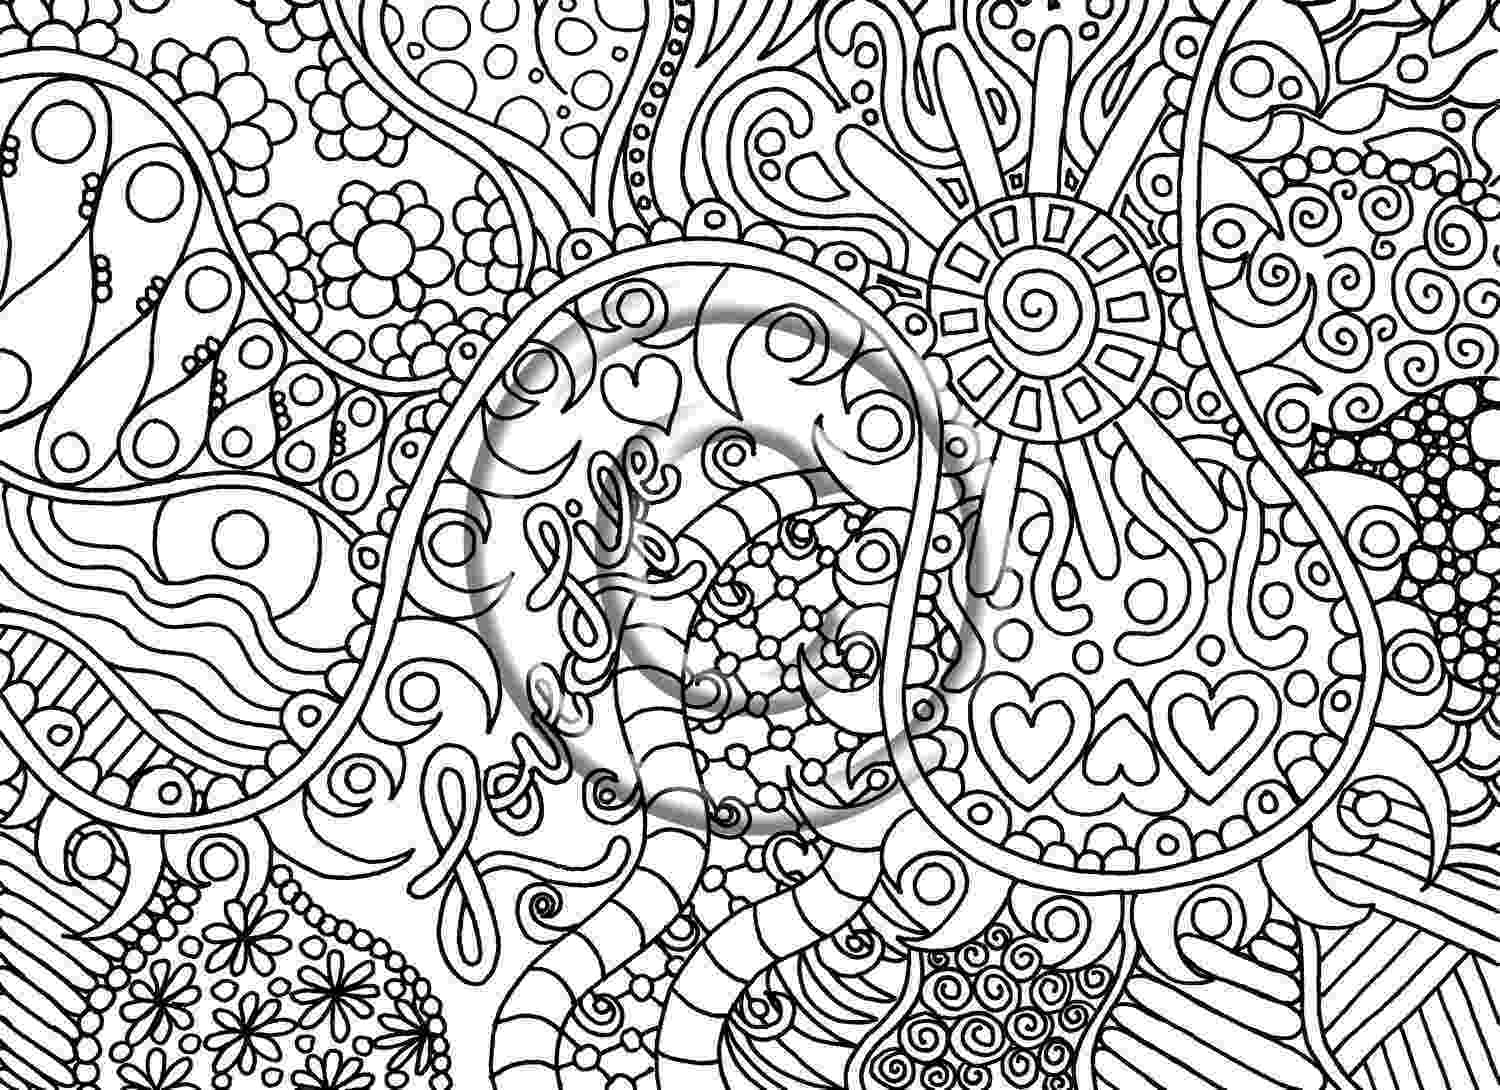 psychedelic colouring pages psychedelic coloring pages gallery free coloring book pages colouring psychedelic